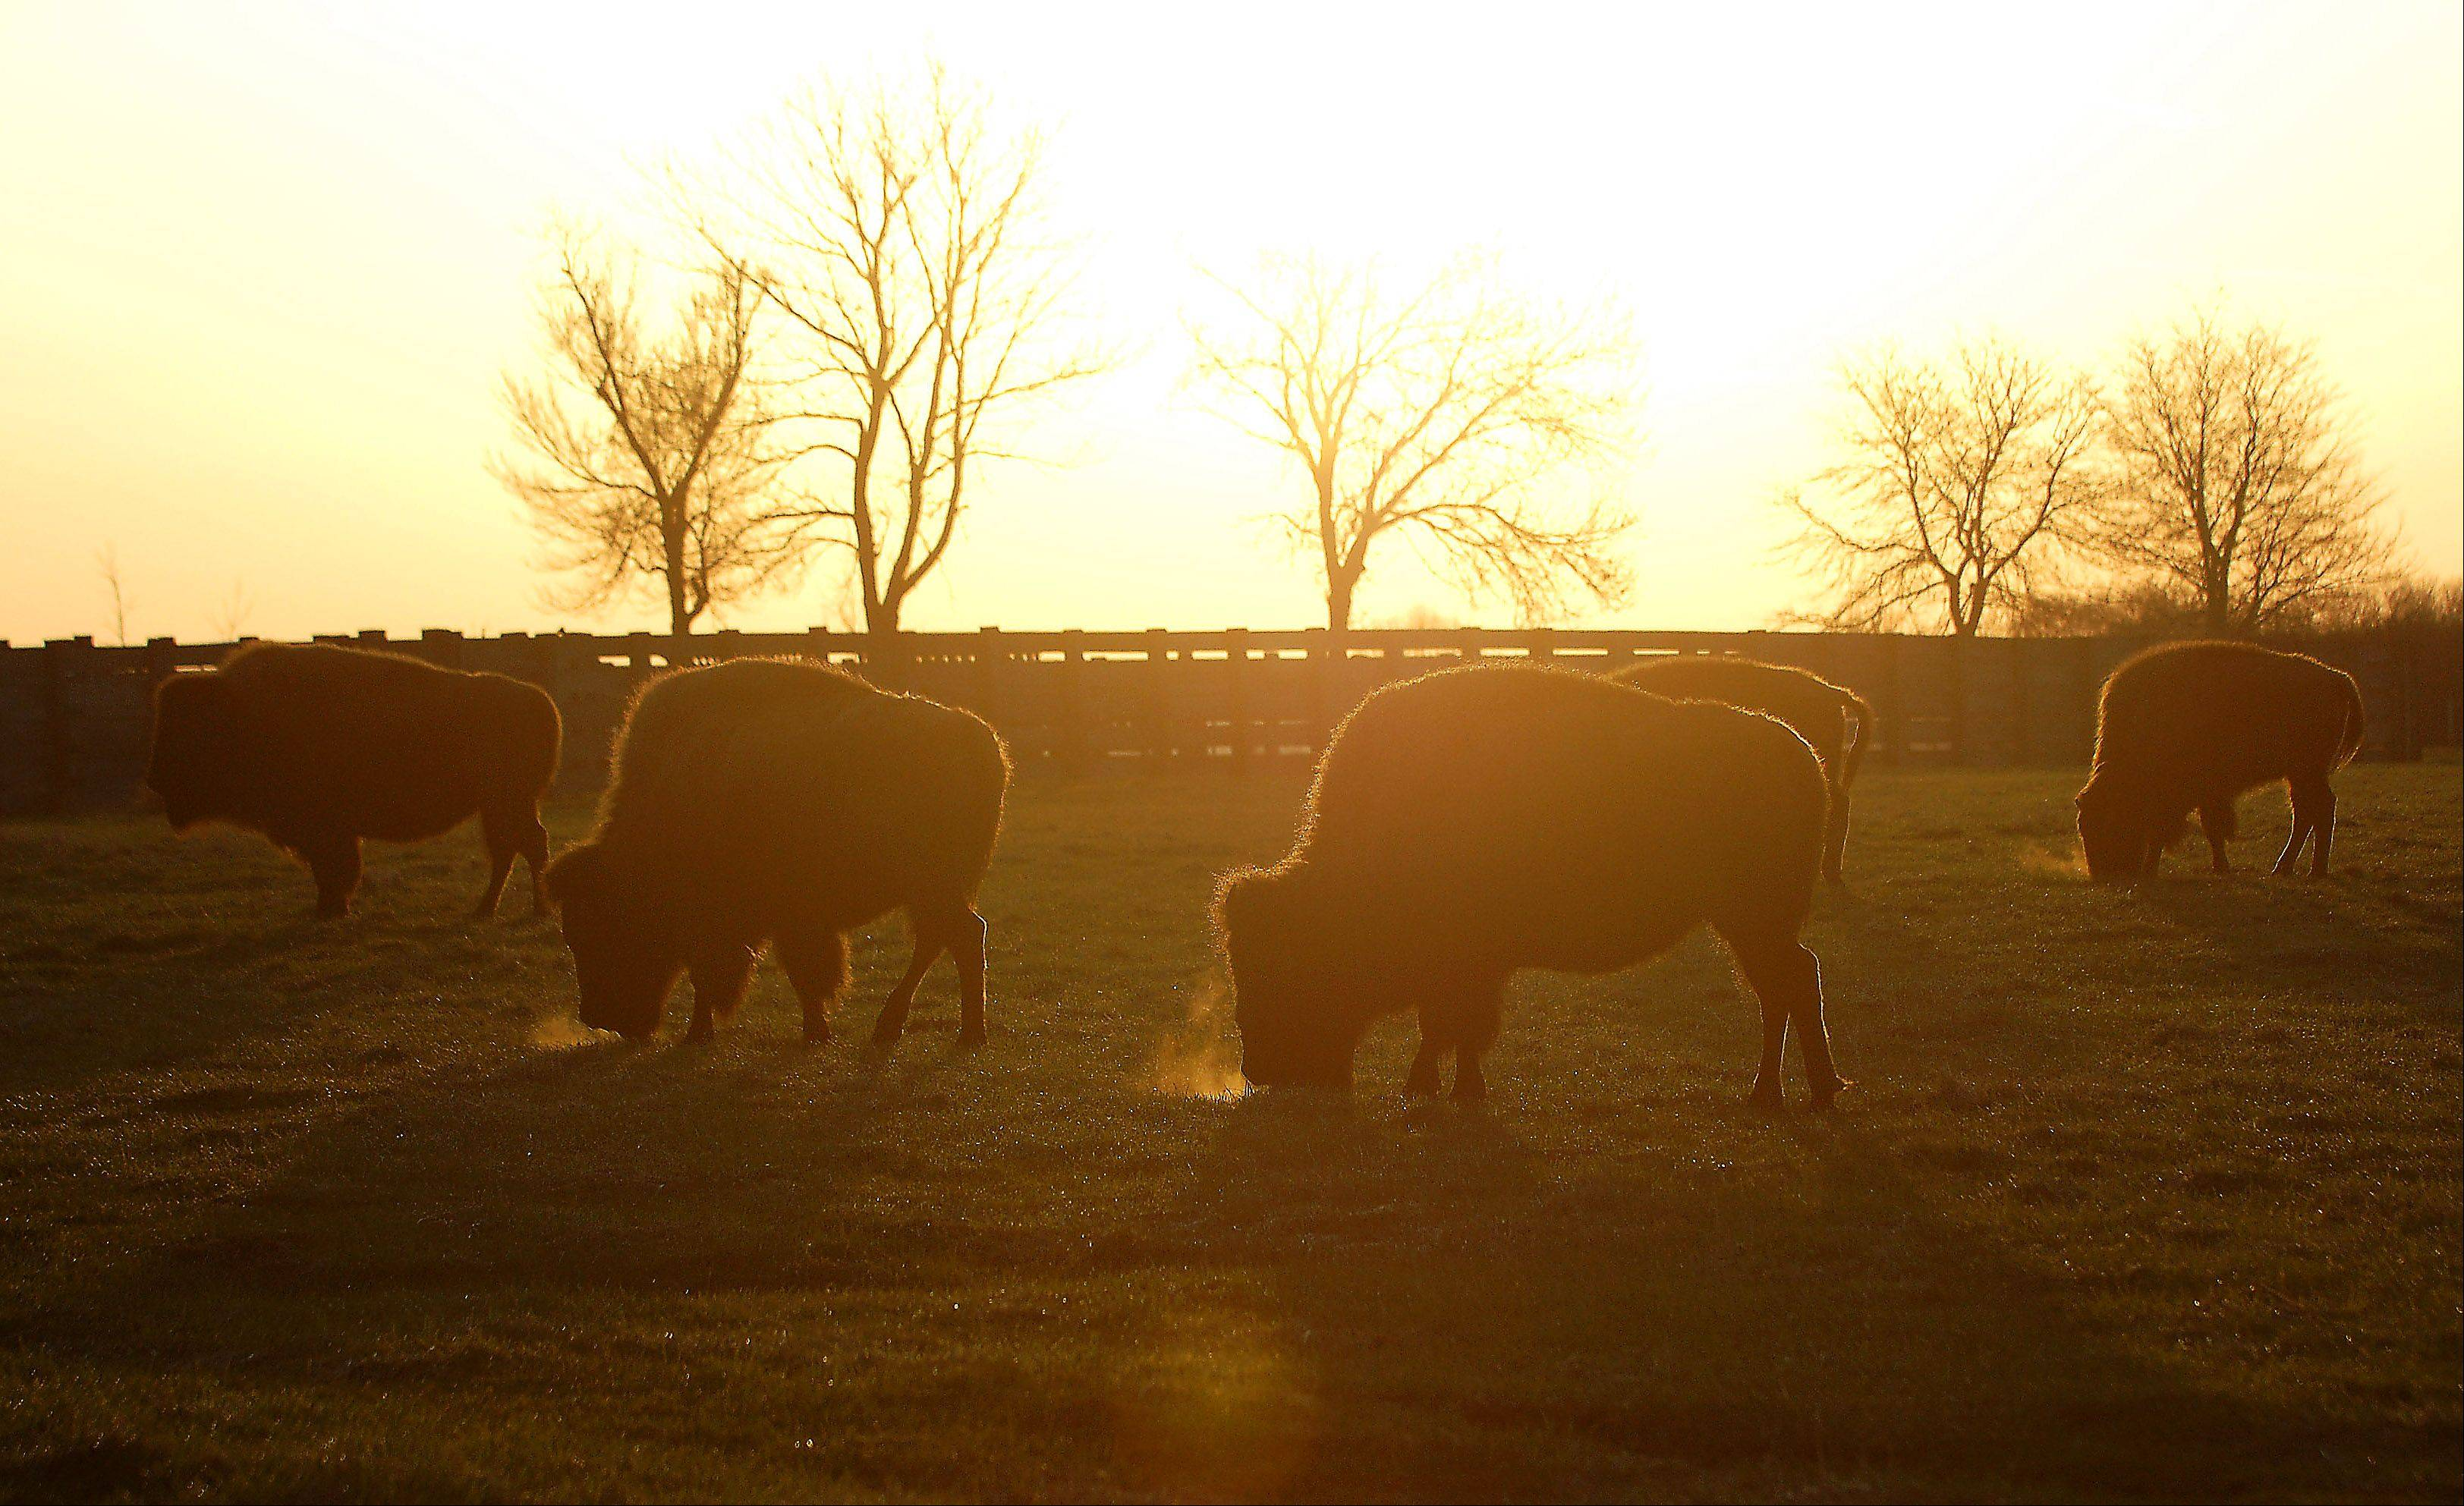 Bison graze in the pasture as the sun rises over Fermilab in Batavia.